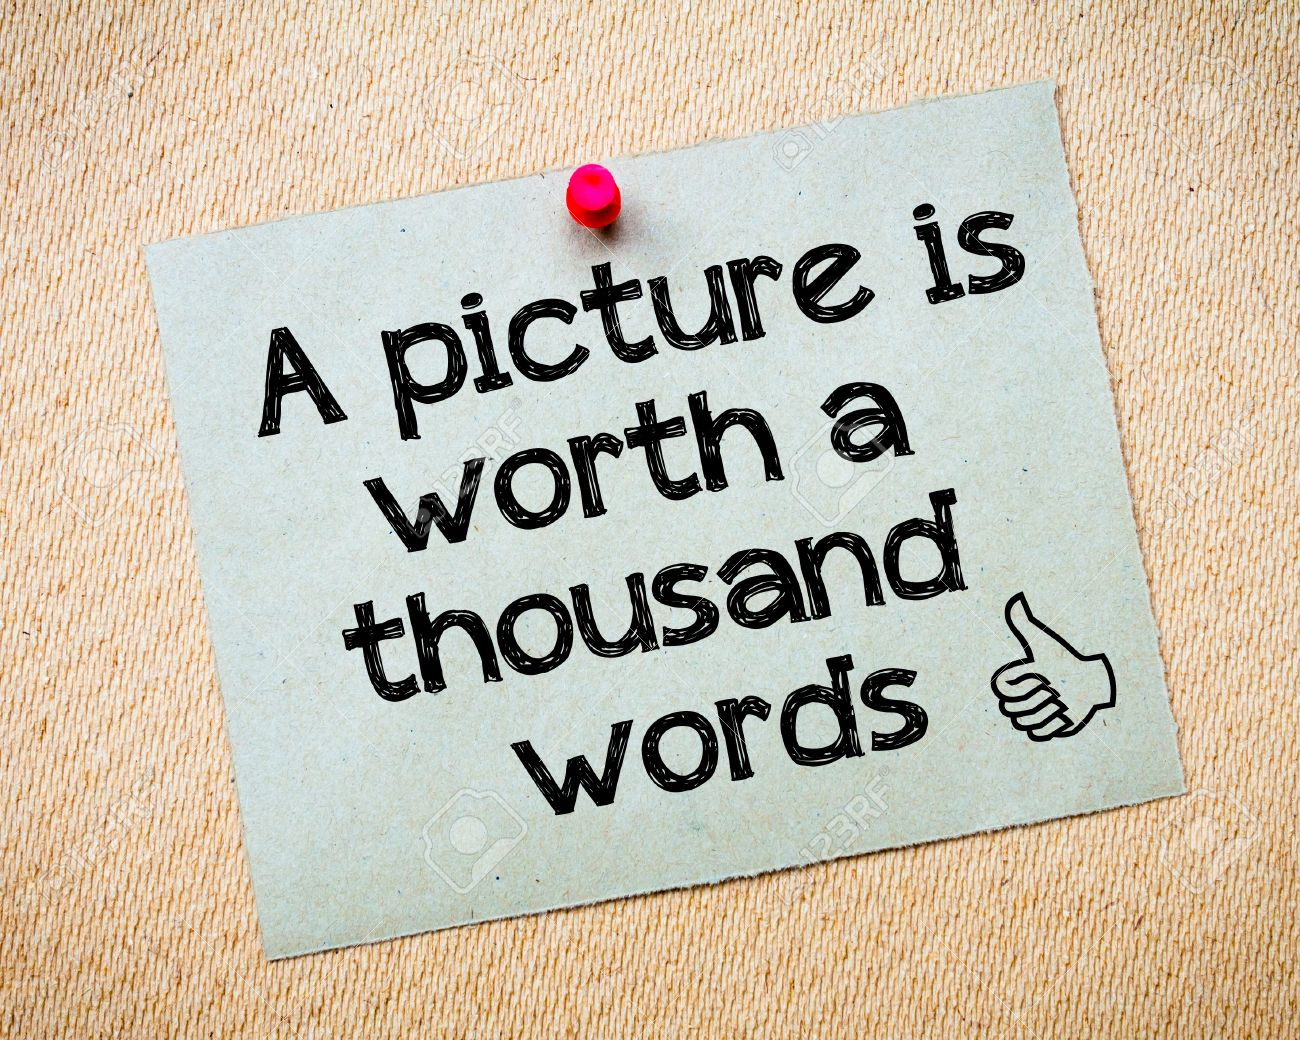 Words thousand a pictures are worth